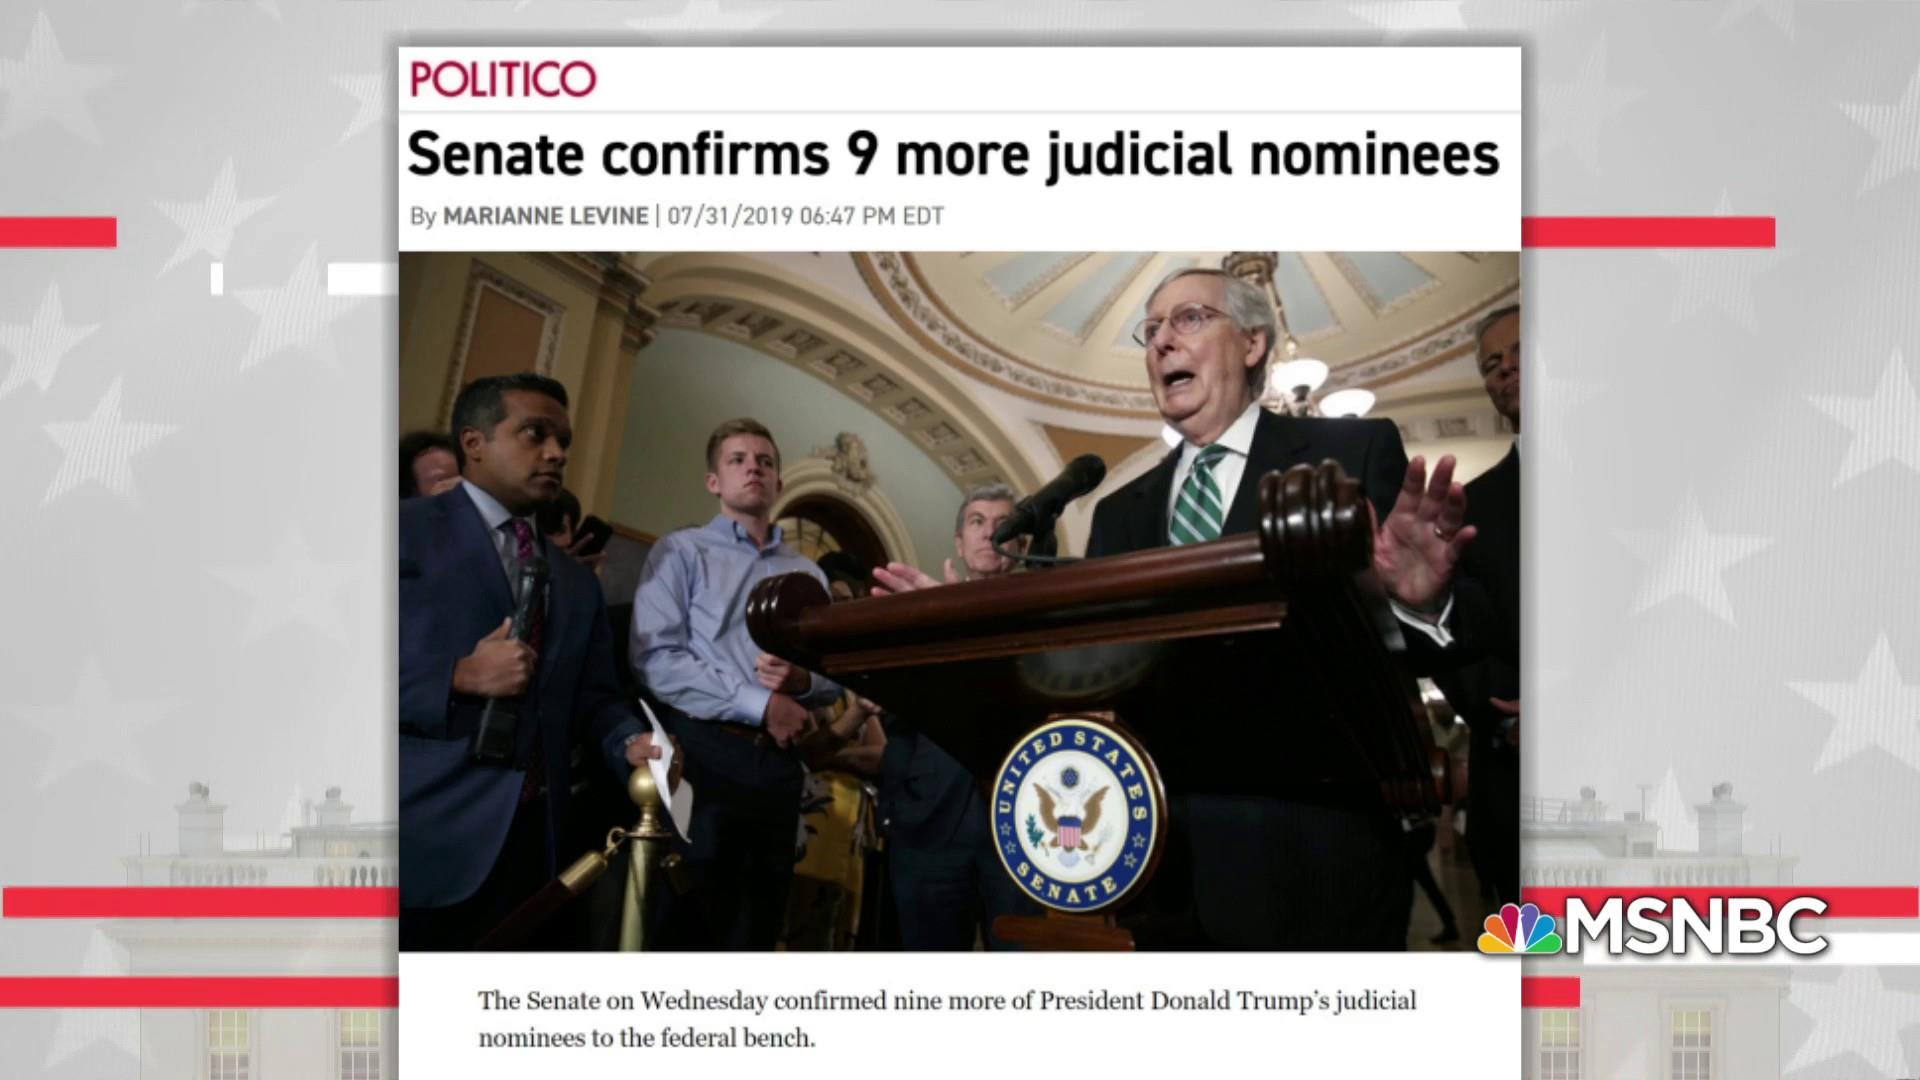 McConnell reshaping U.S. with right-wing judge approvals